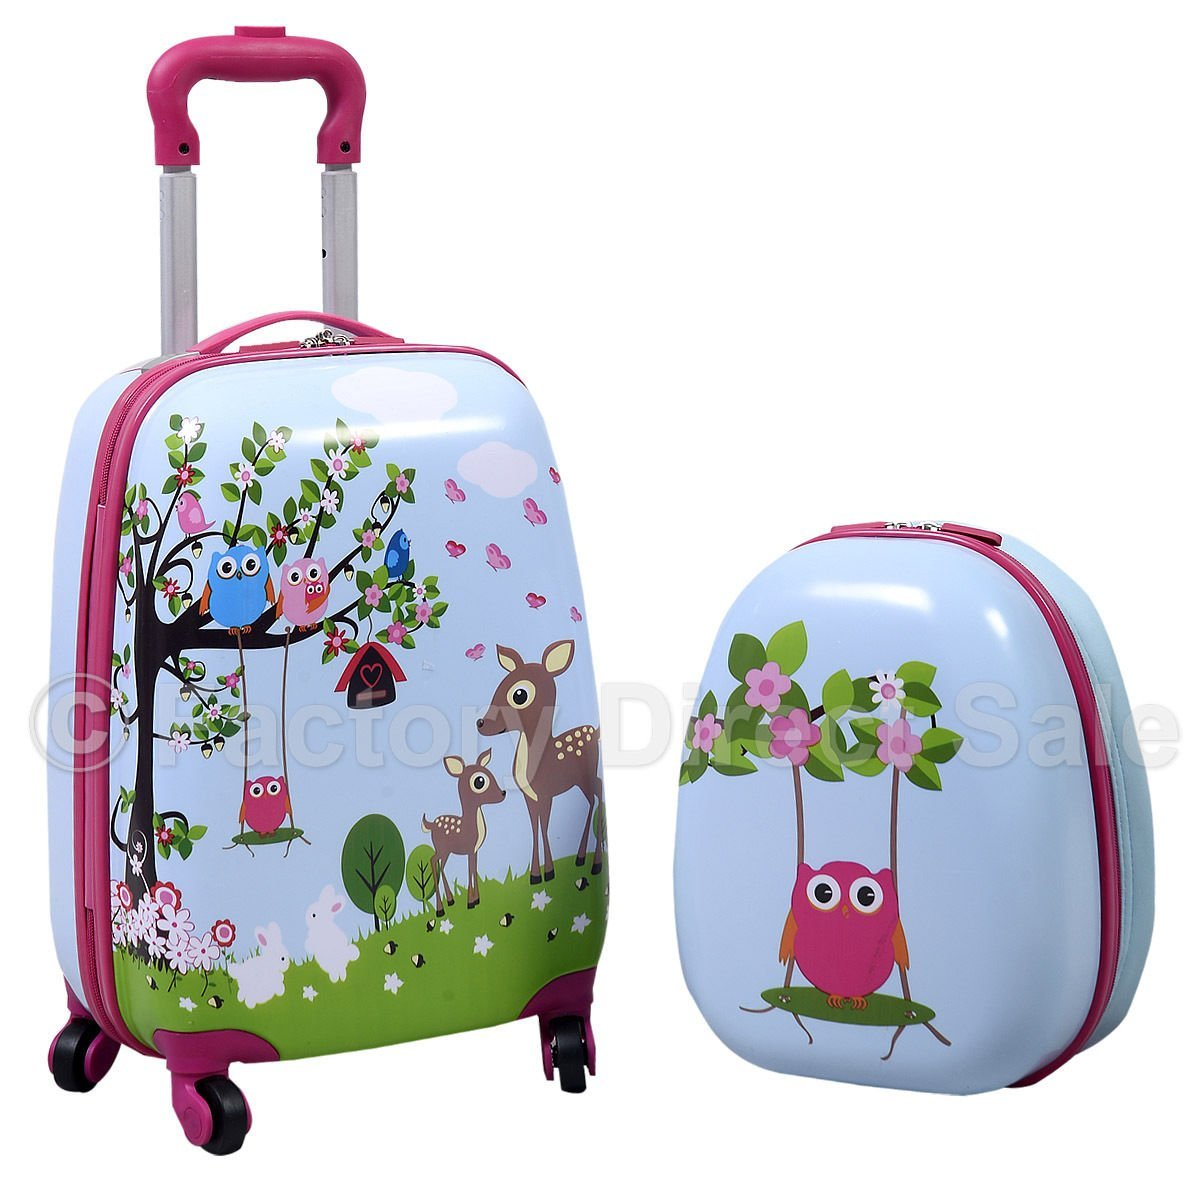 Owl Rolling Backpack YuJy9lBb